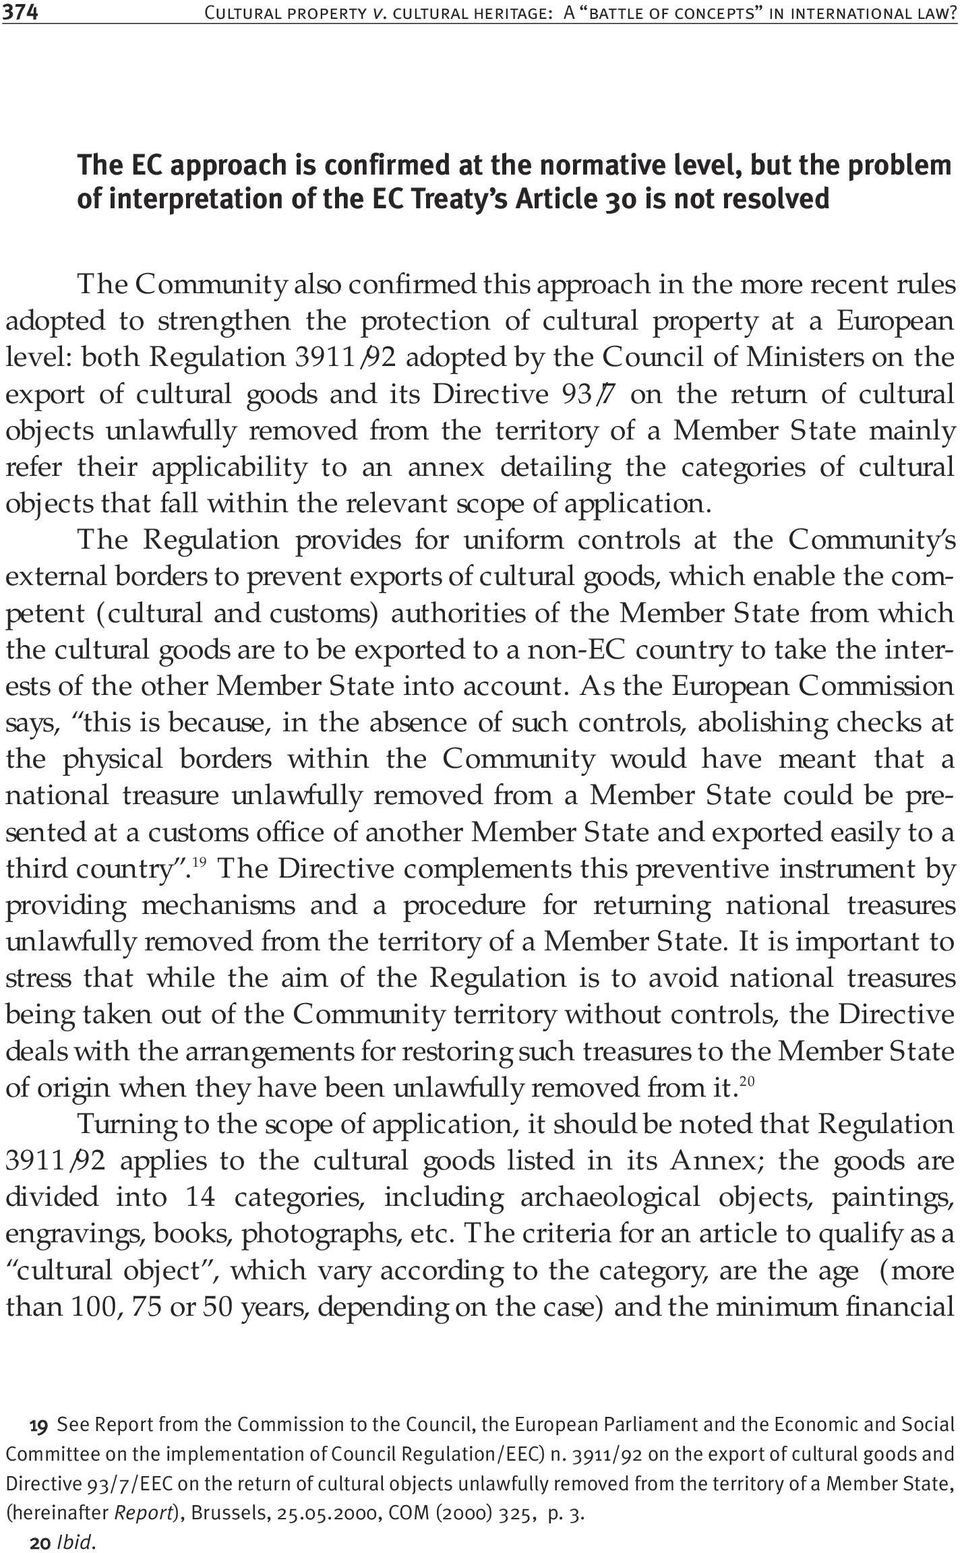 rules adopted to strengthen the protection of cultural property at a European level: both Regulation 3911/92 adopted by the Council of Ministers on the export of cultural goods and its Directive 93/7